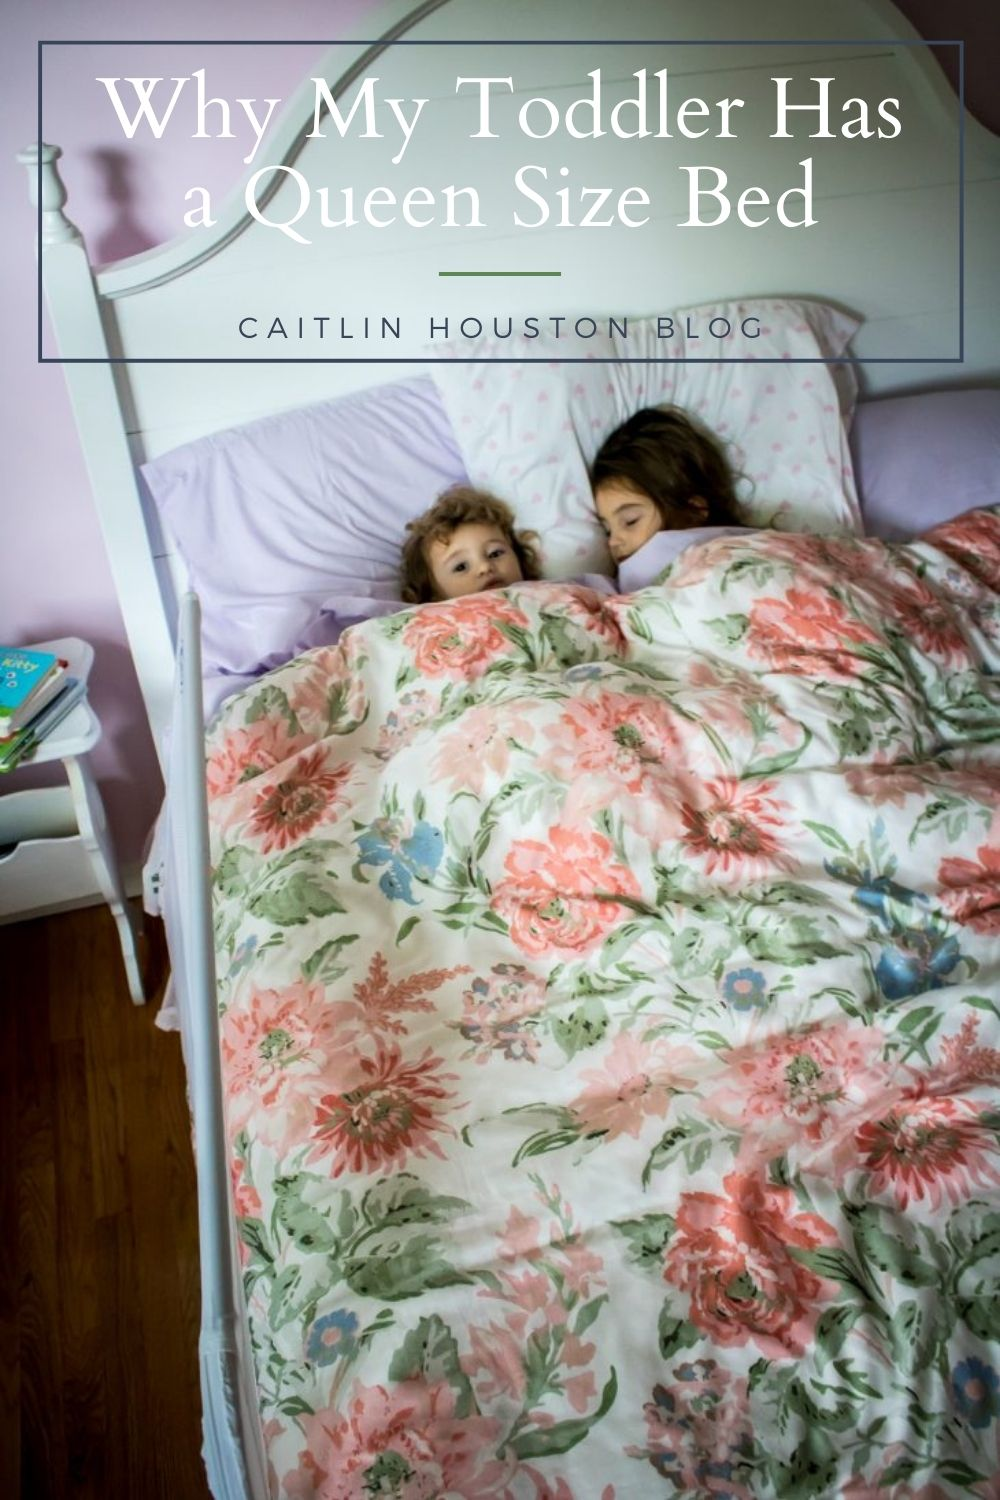 Reasons to Buy a Toddler a Queen Size Bed